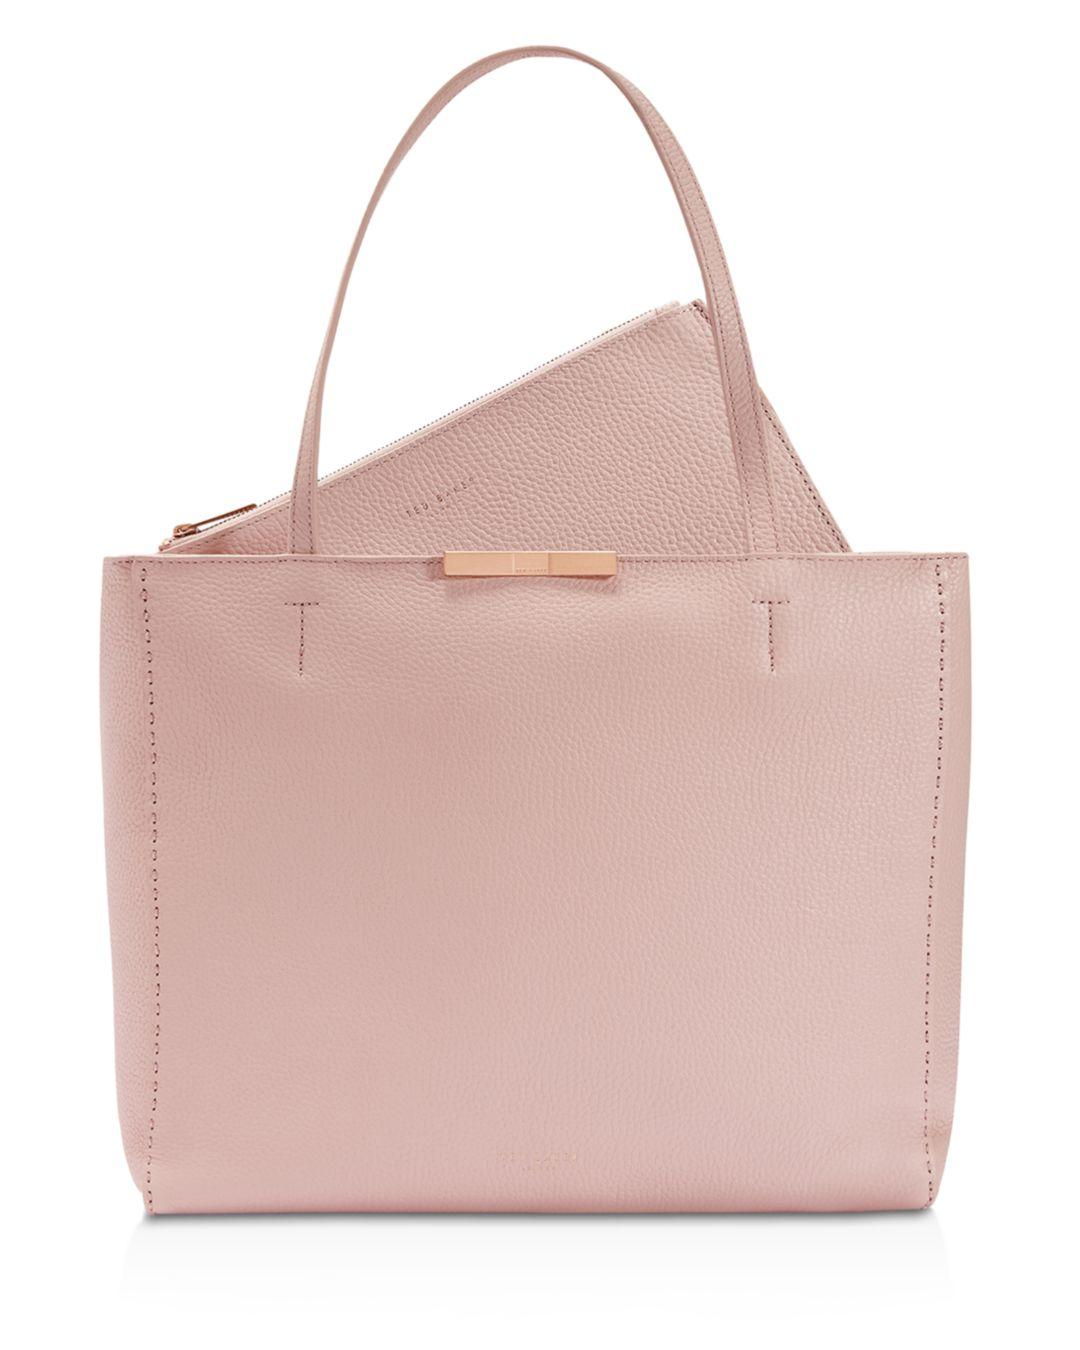 a7323deff1 Lyst - Ted Baker Clarkia Pebbled Leather Shopper Tote in Pink